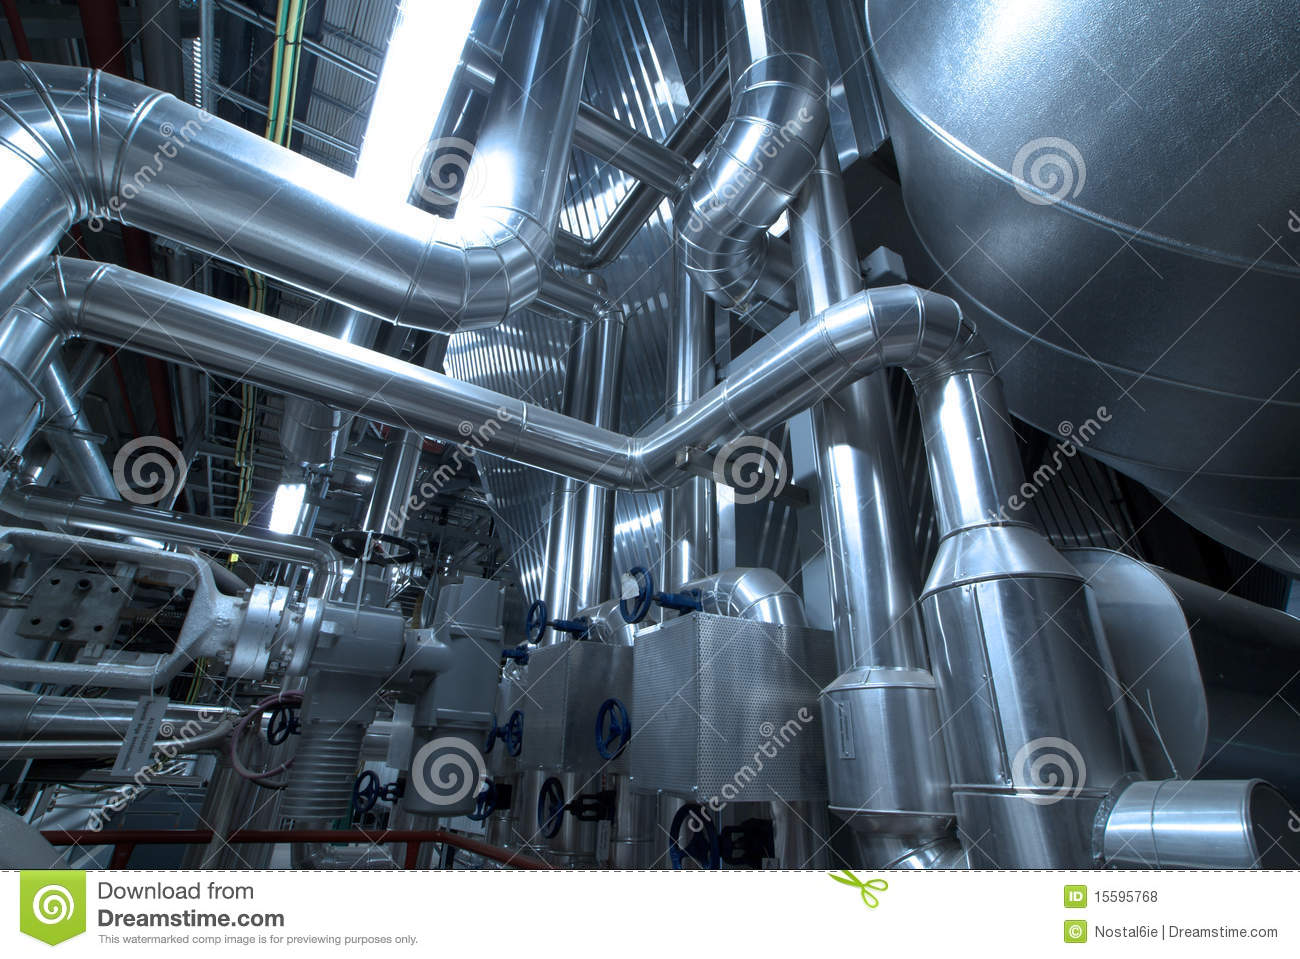 Pipes, tubes, machinery steam turbine